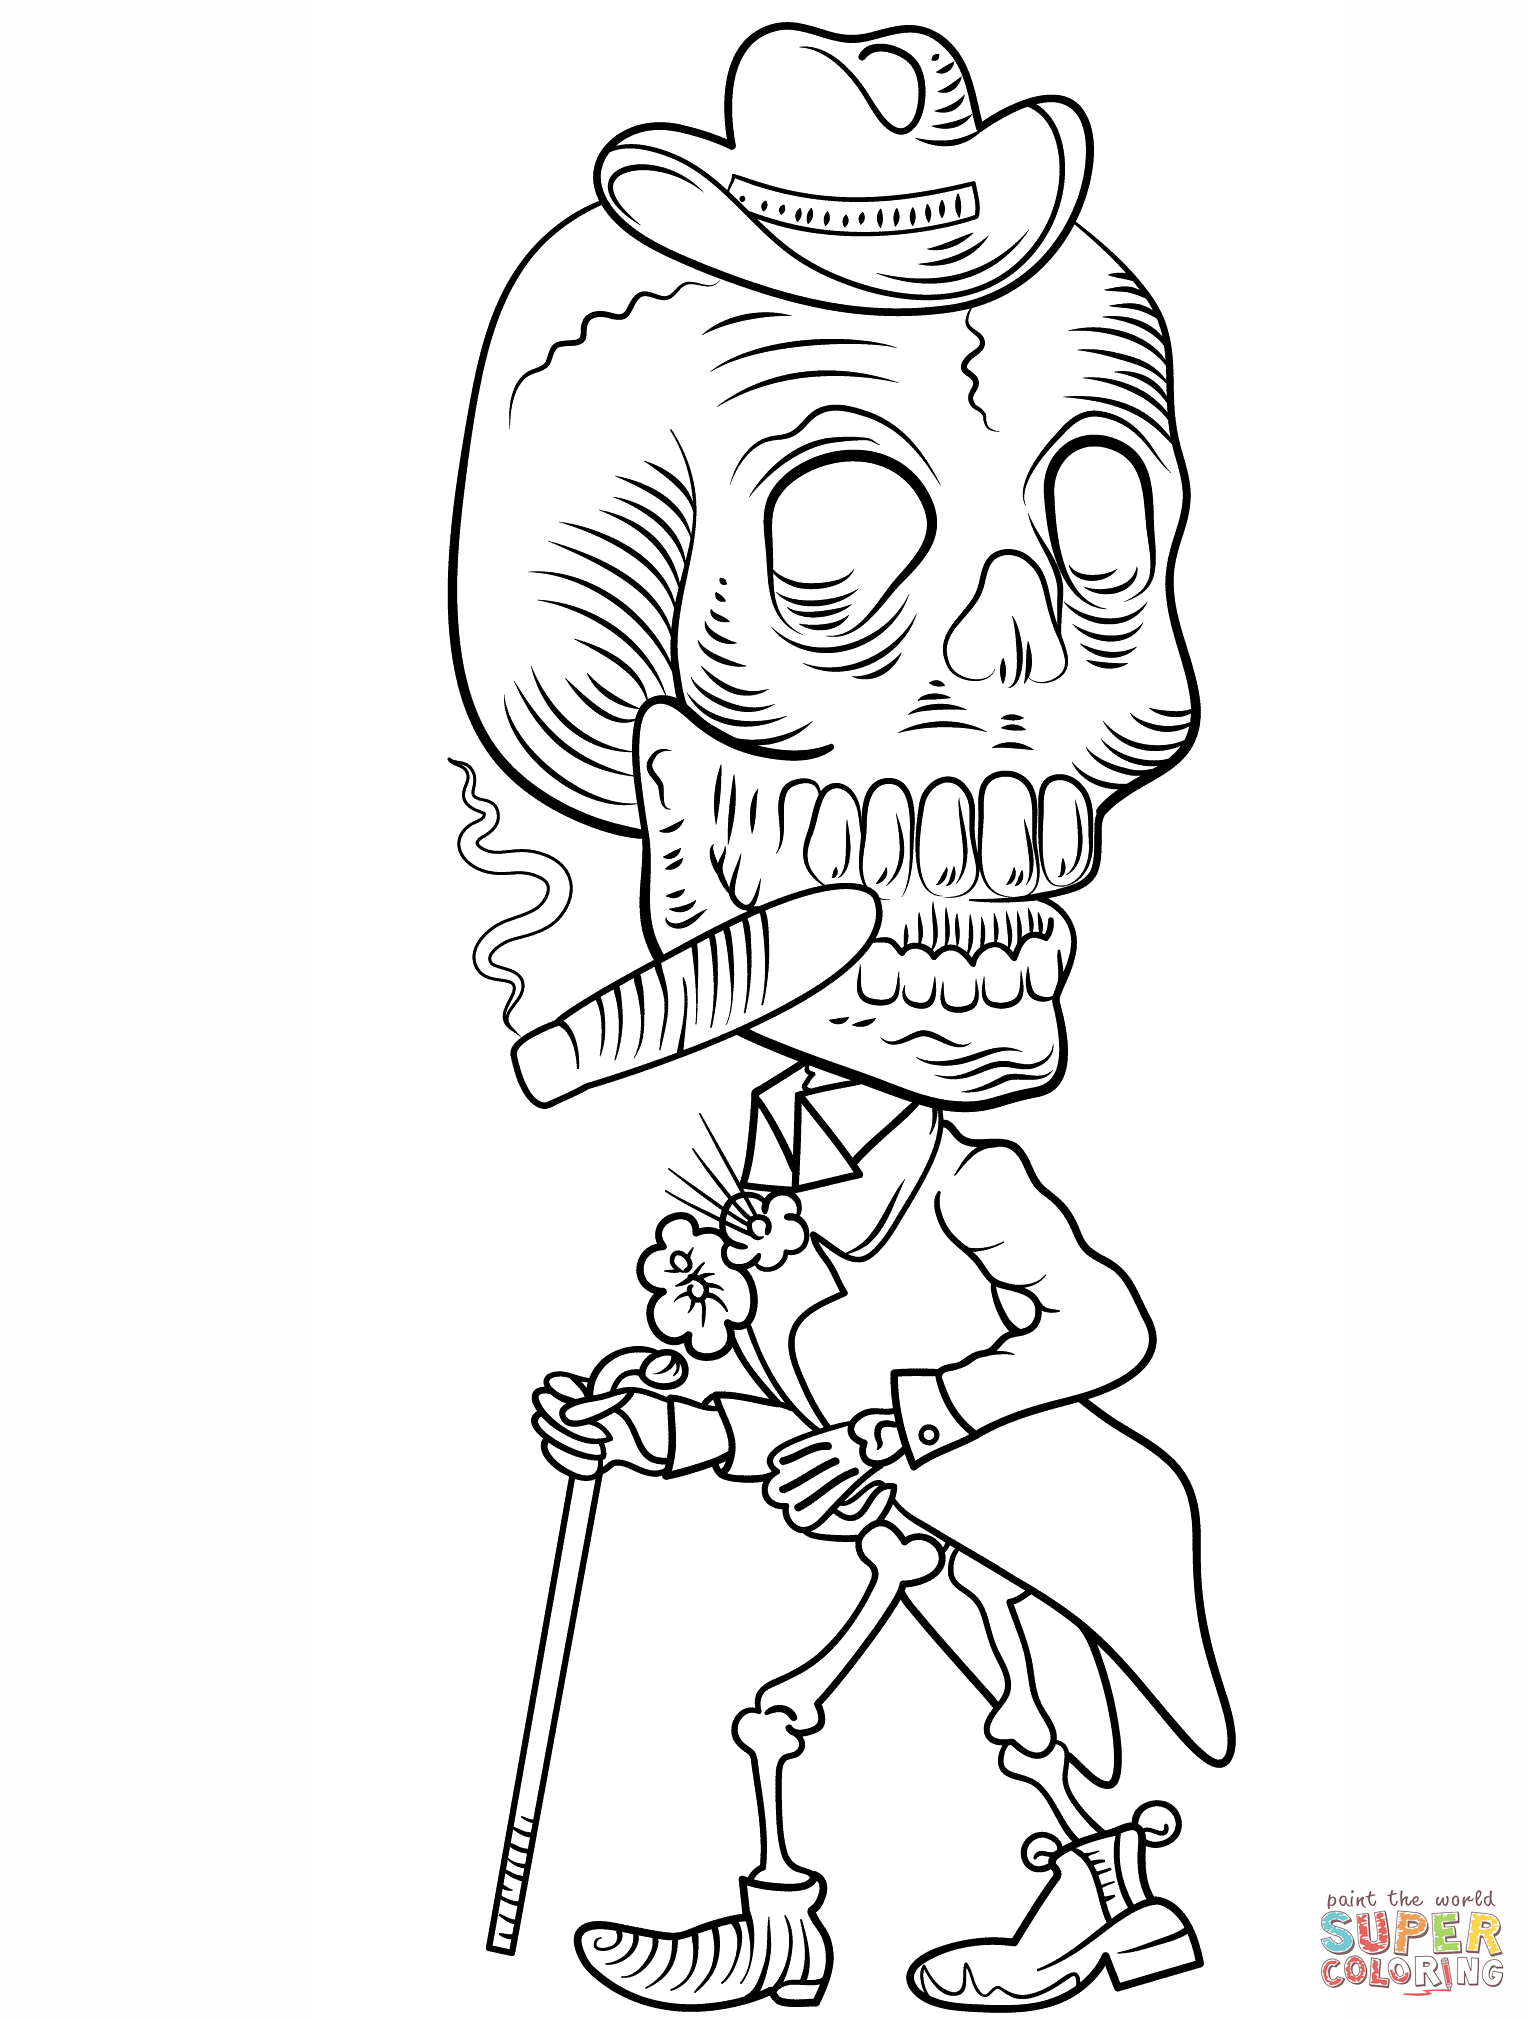 Day Of The Dead Skeleton Coloring Page   Free Printable Coloring Pages - Free Printable Skeleton Coloring Pages